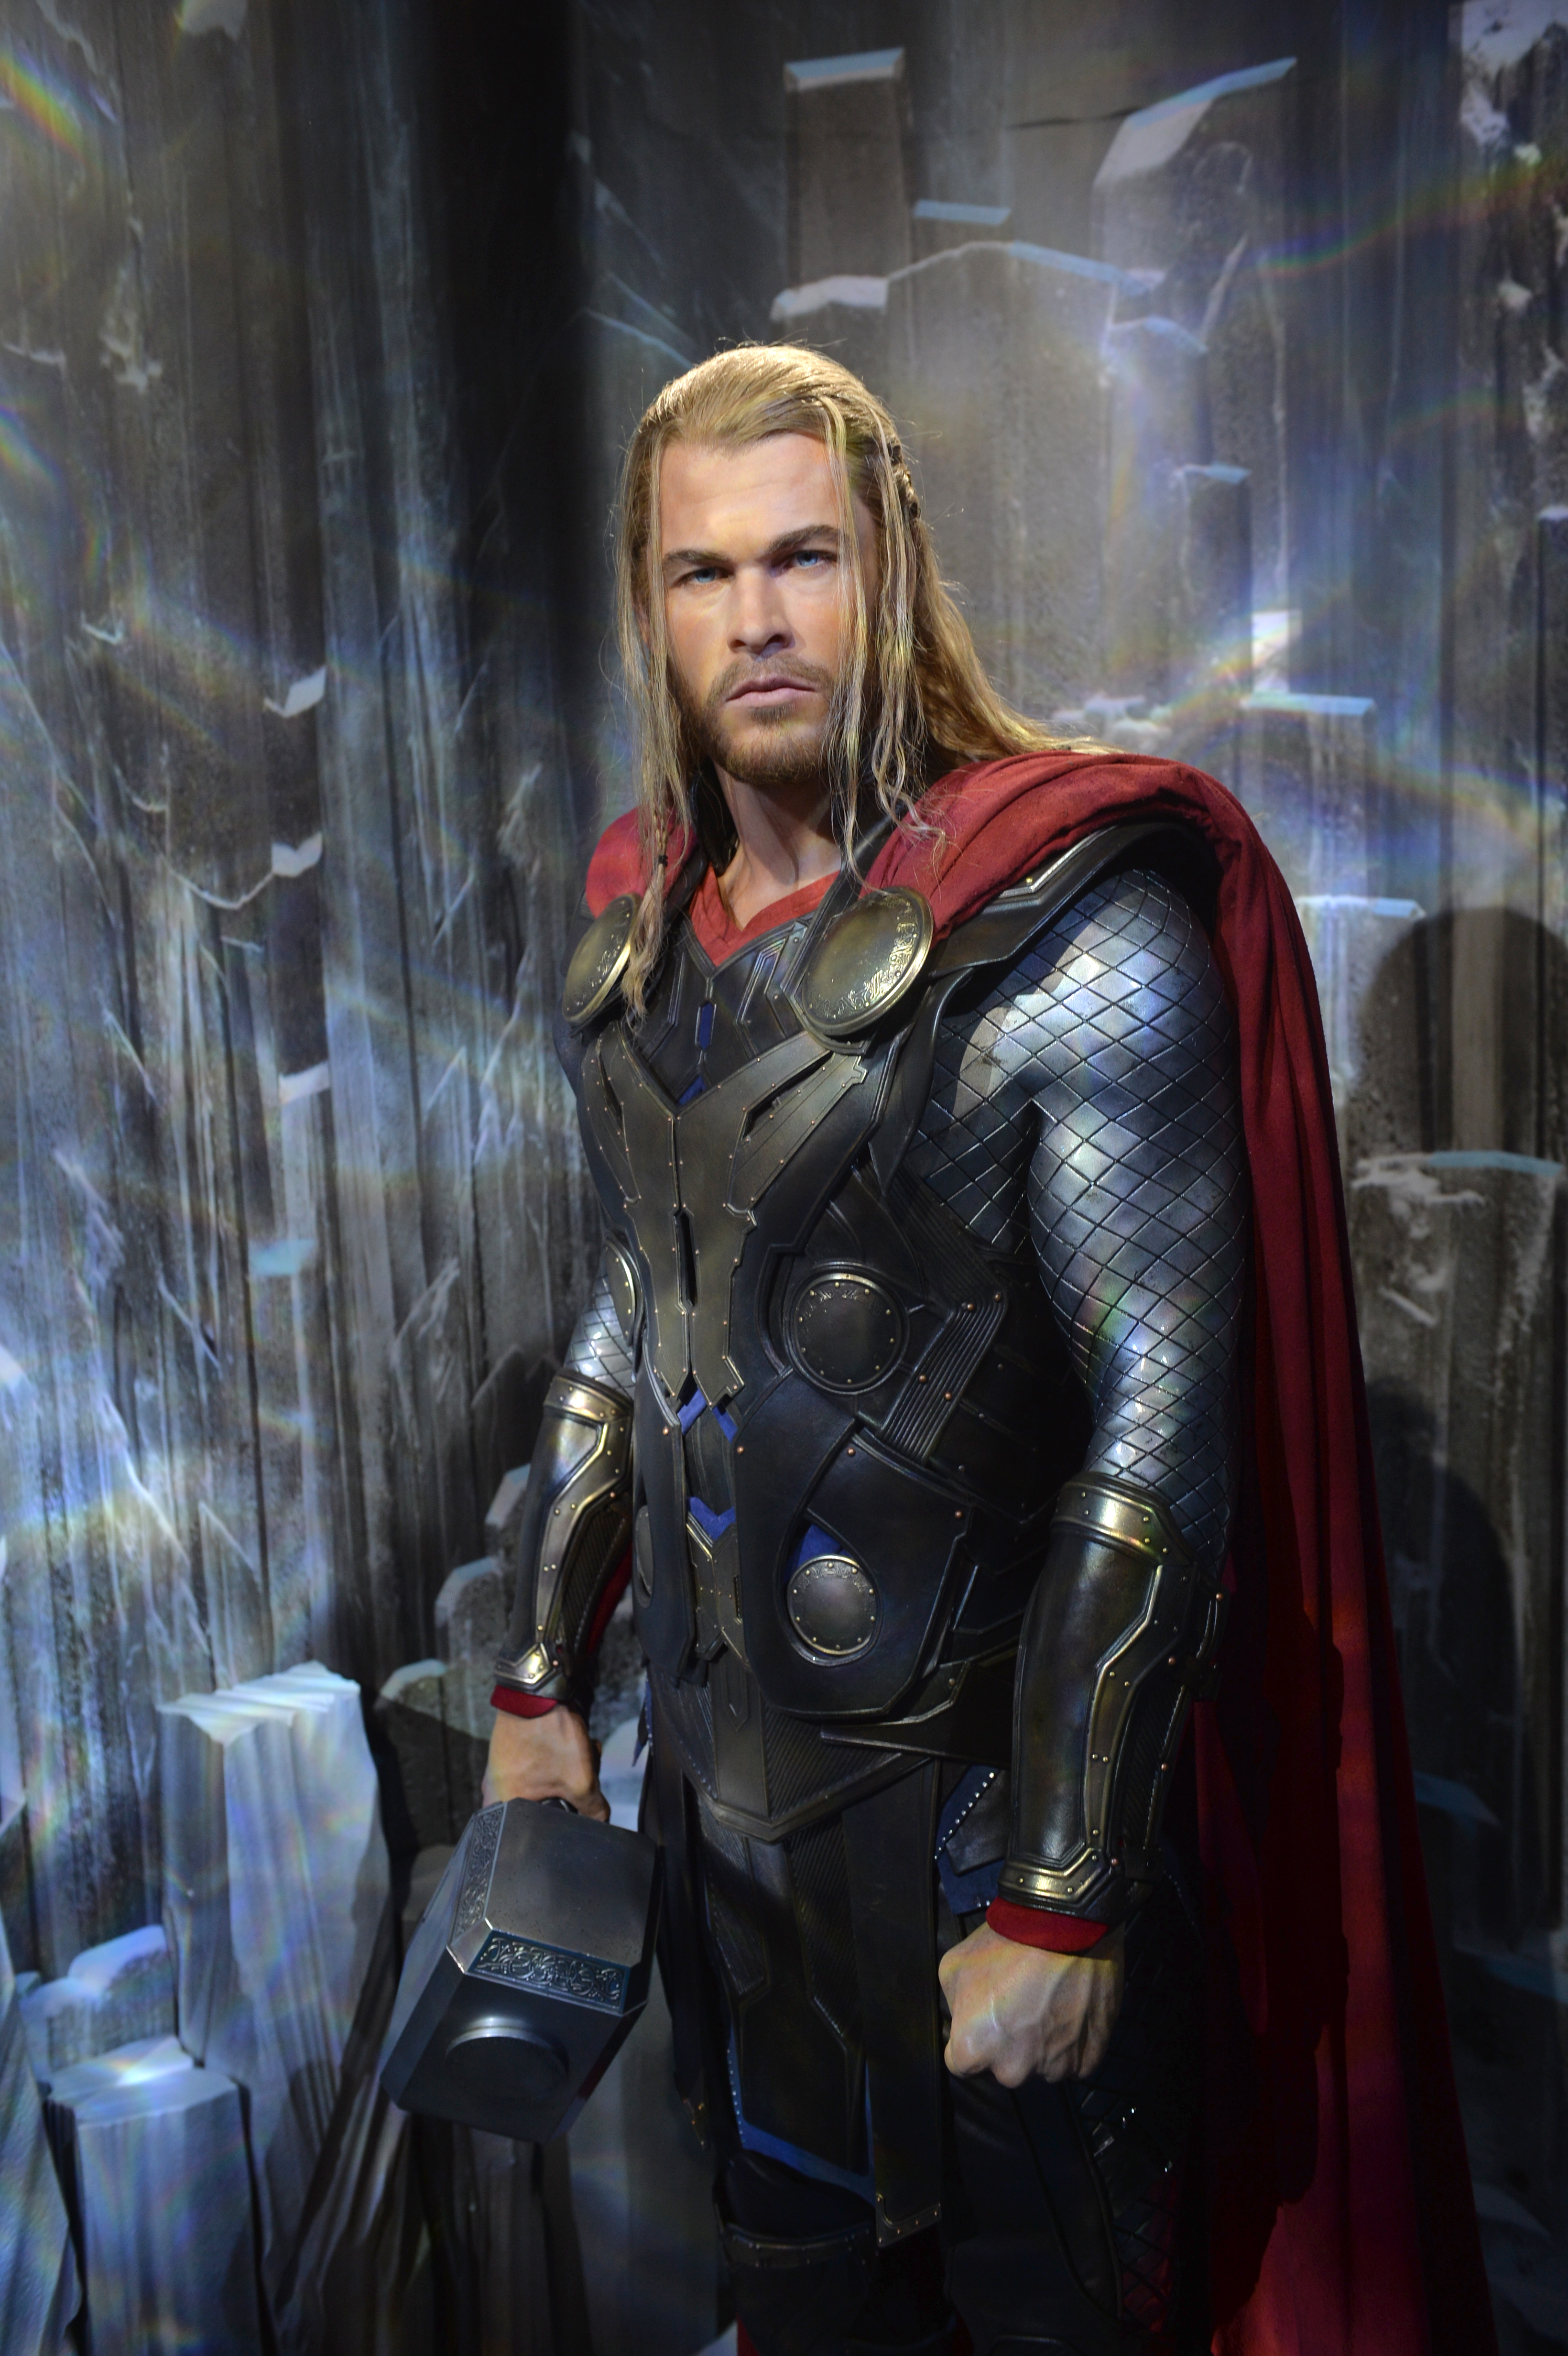 Thor wax figure holding his hammer at Madame Tussauds Blackpool